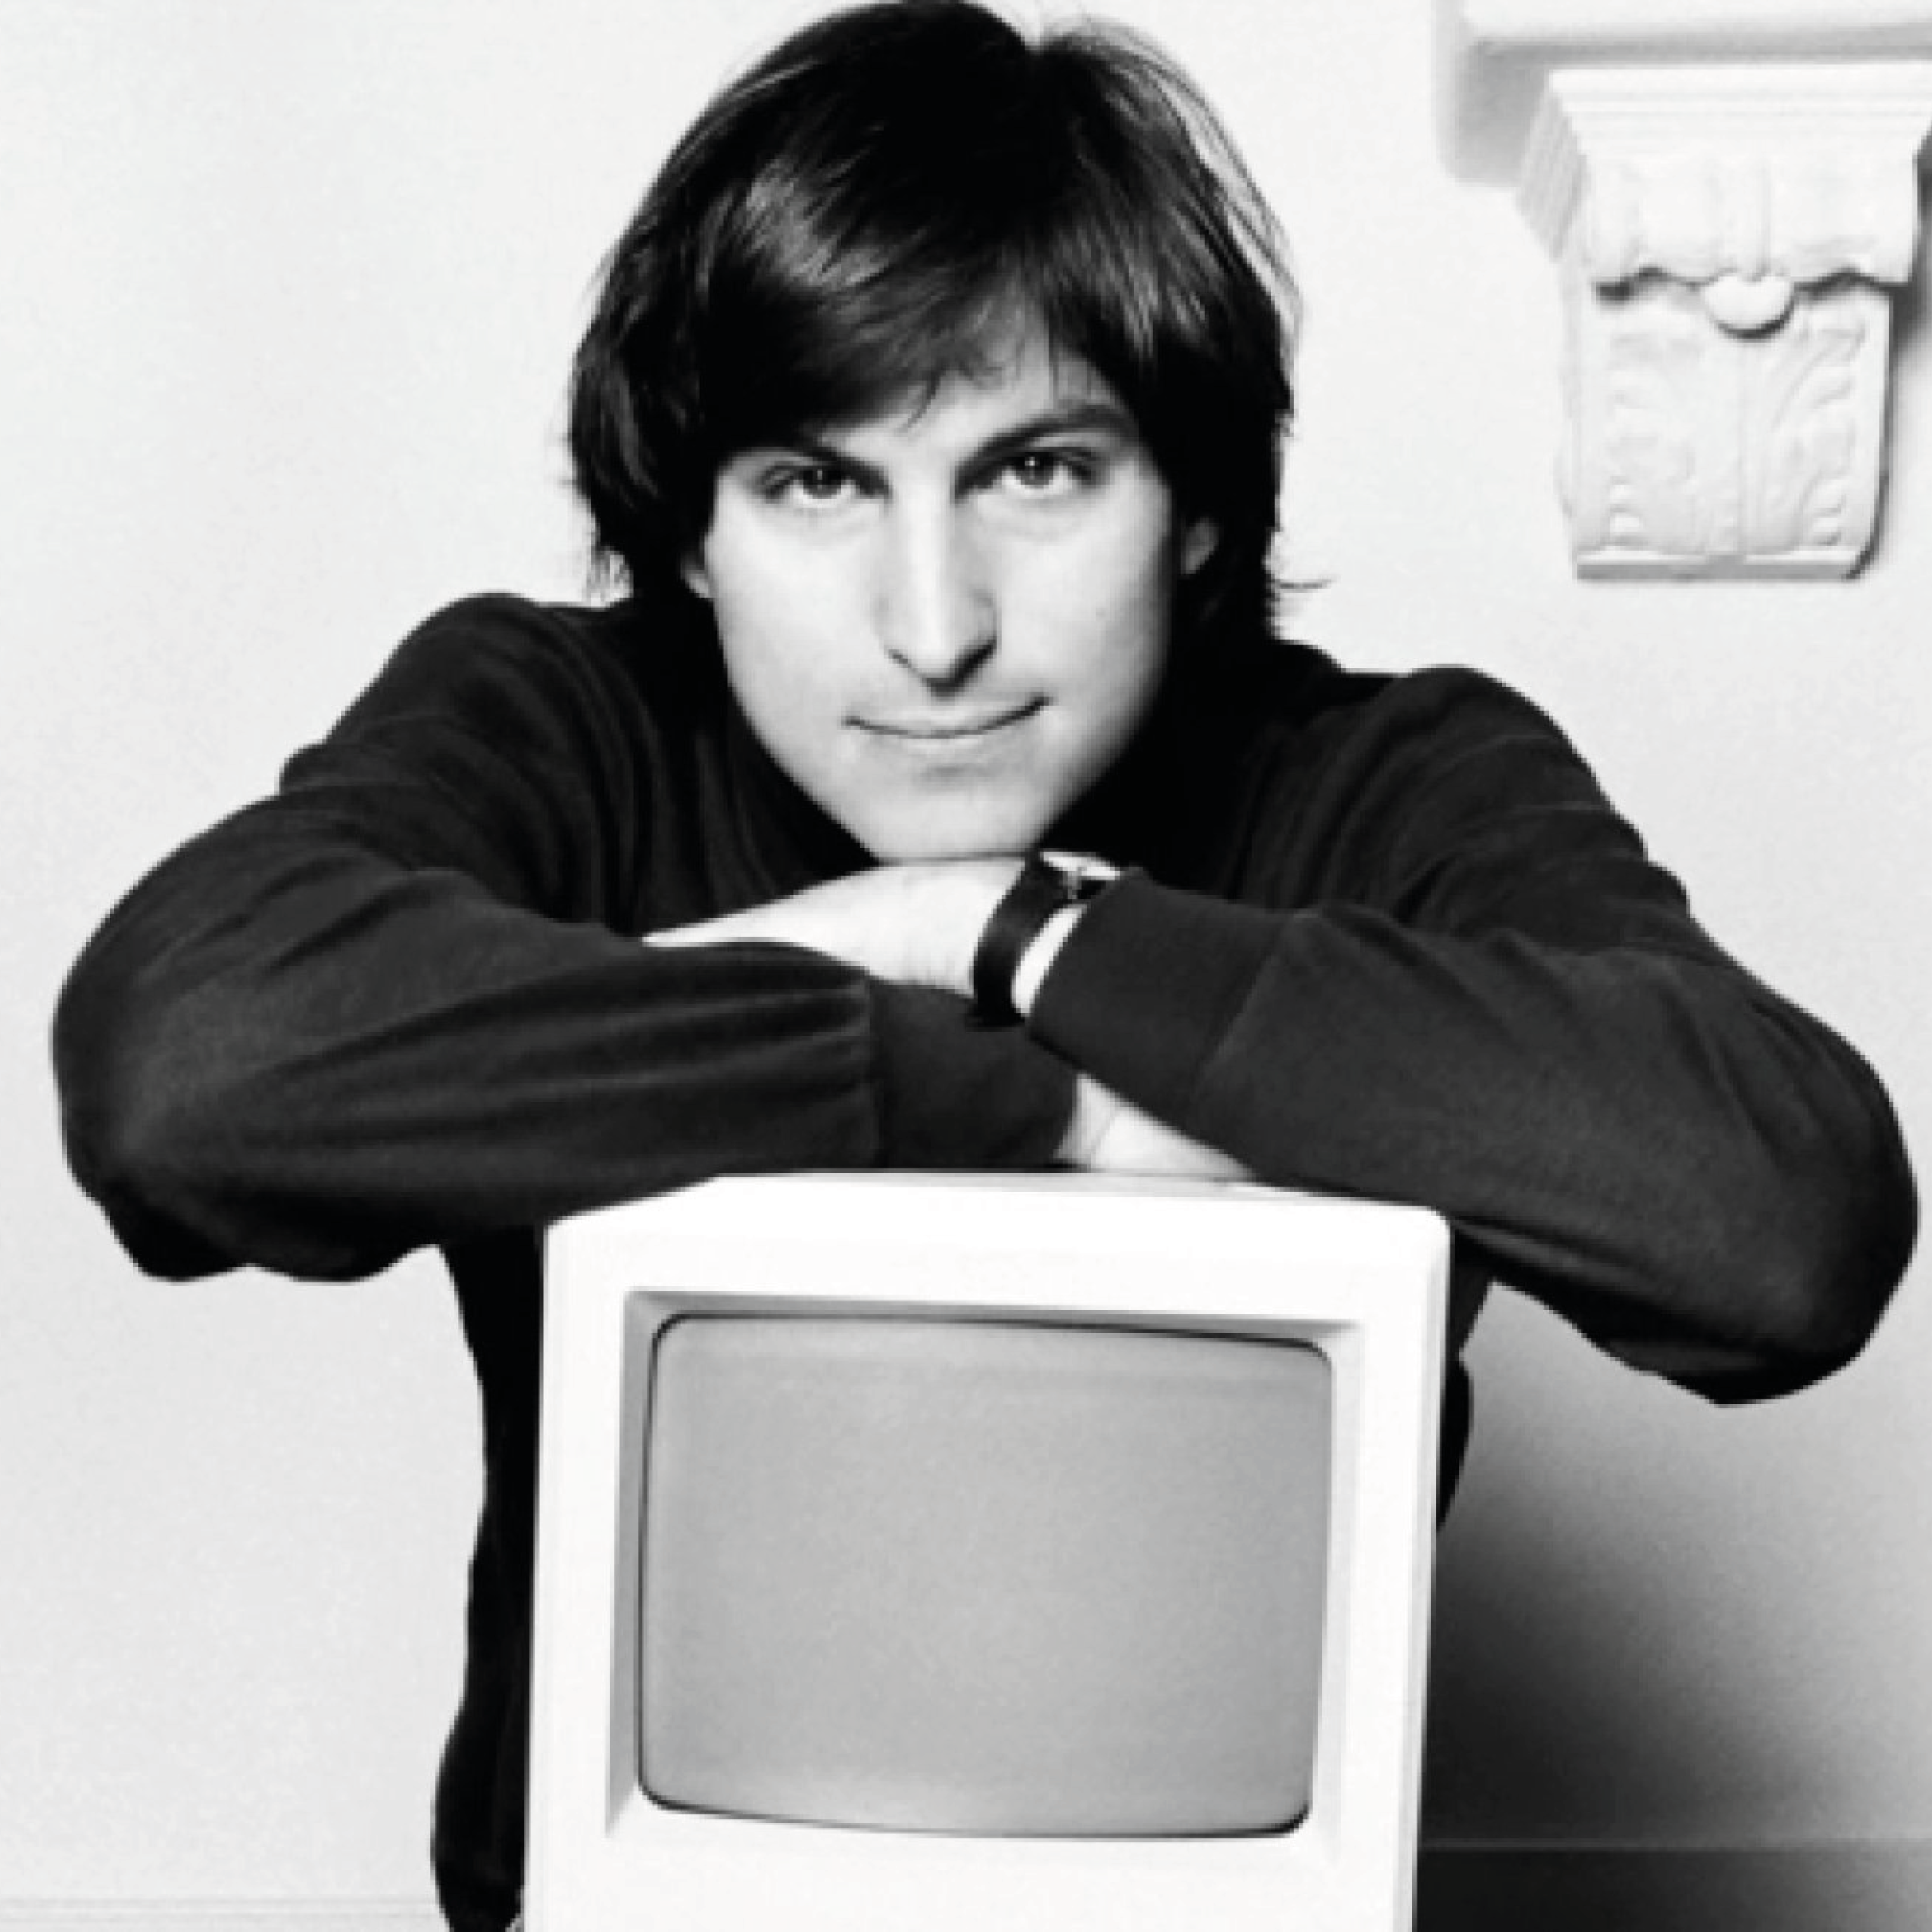 https://mrj-conseil.fr/wp-content/uploads/2016/10/steve-jobs-01.png